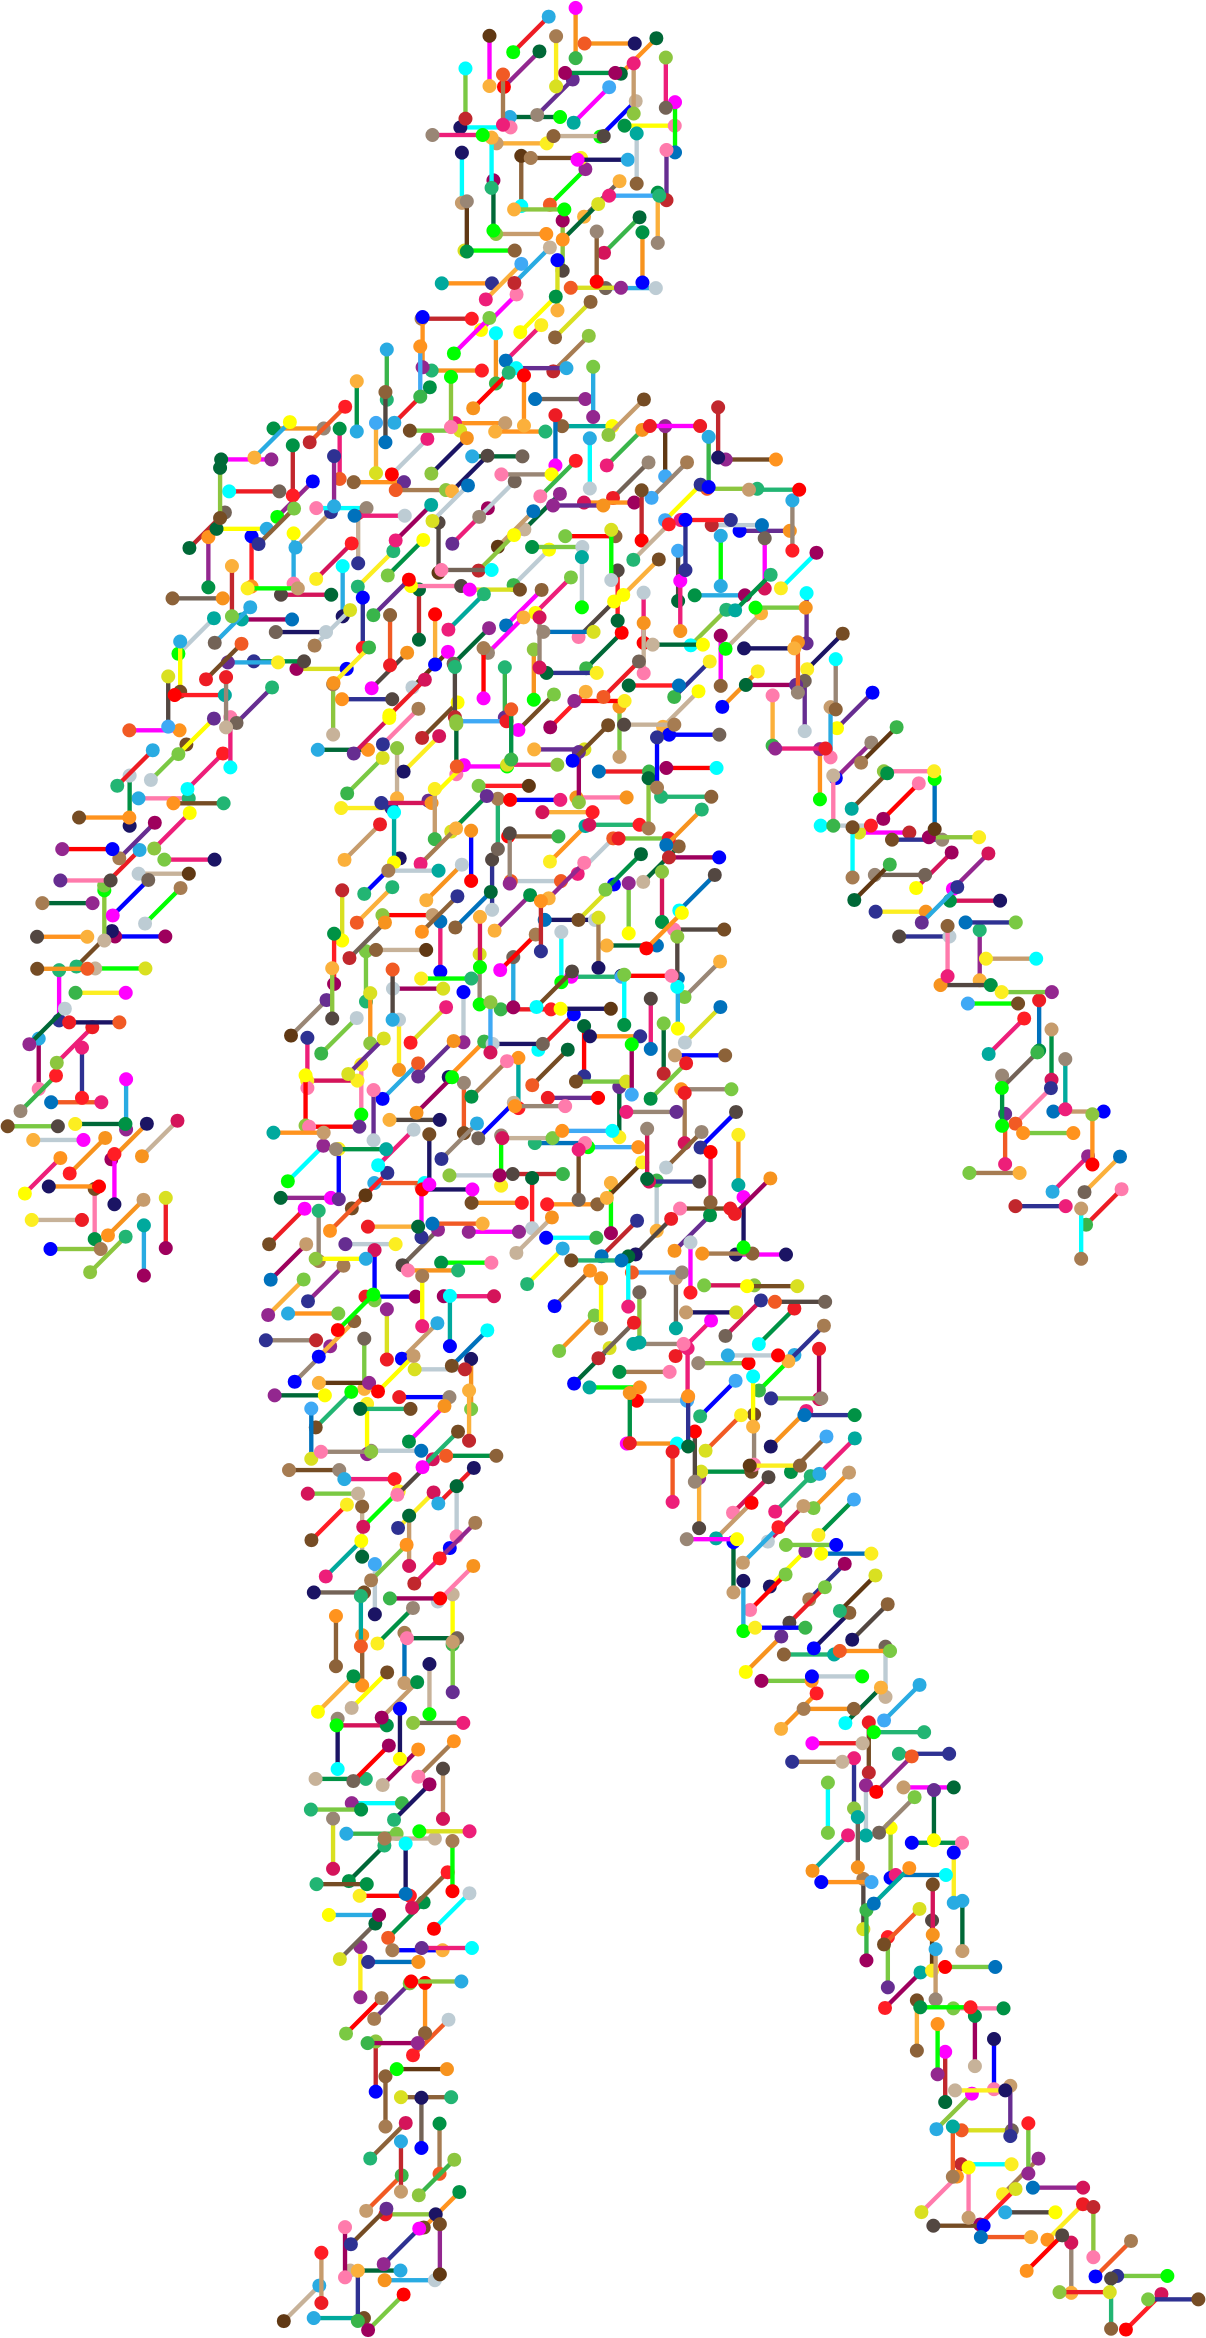 vector royalty free library Prismatic man big image. Molecular biology clipart.